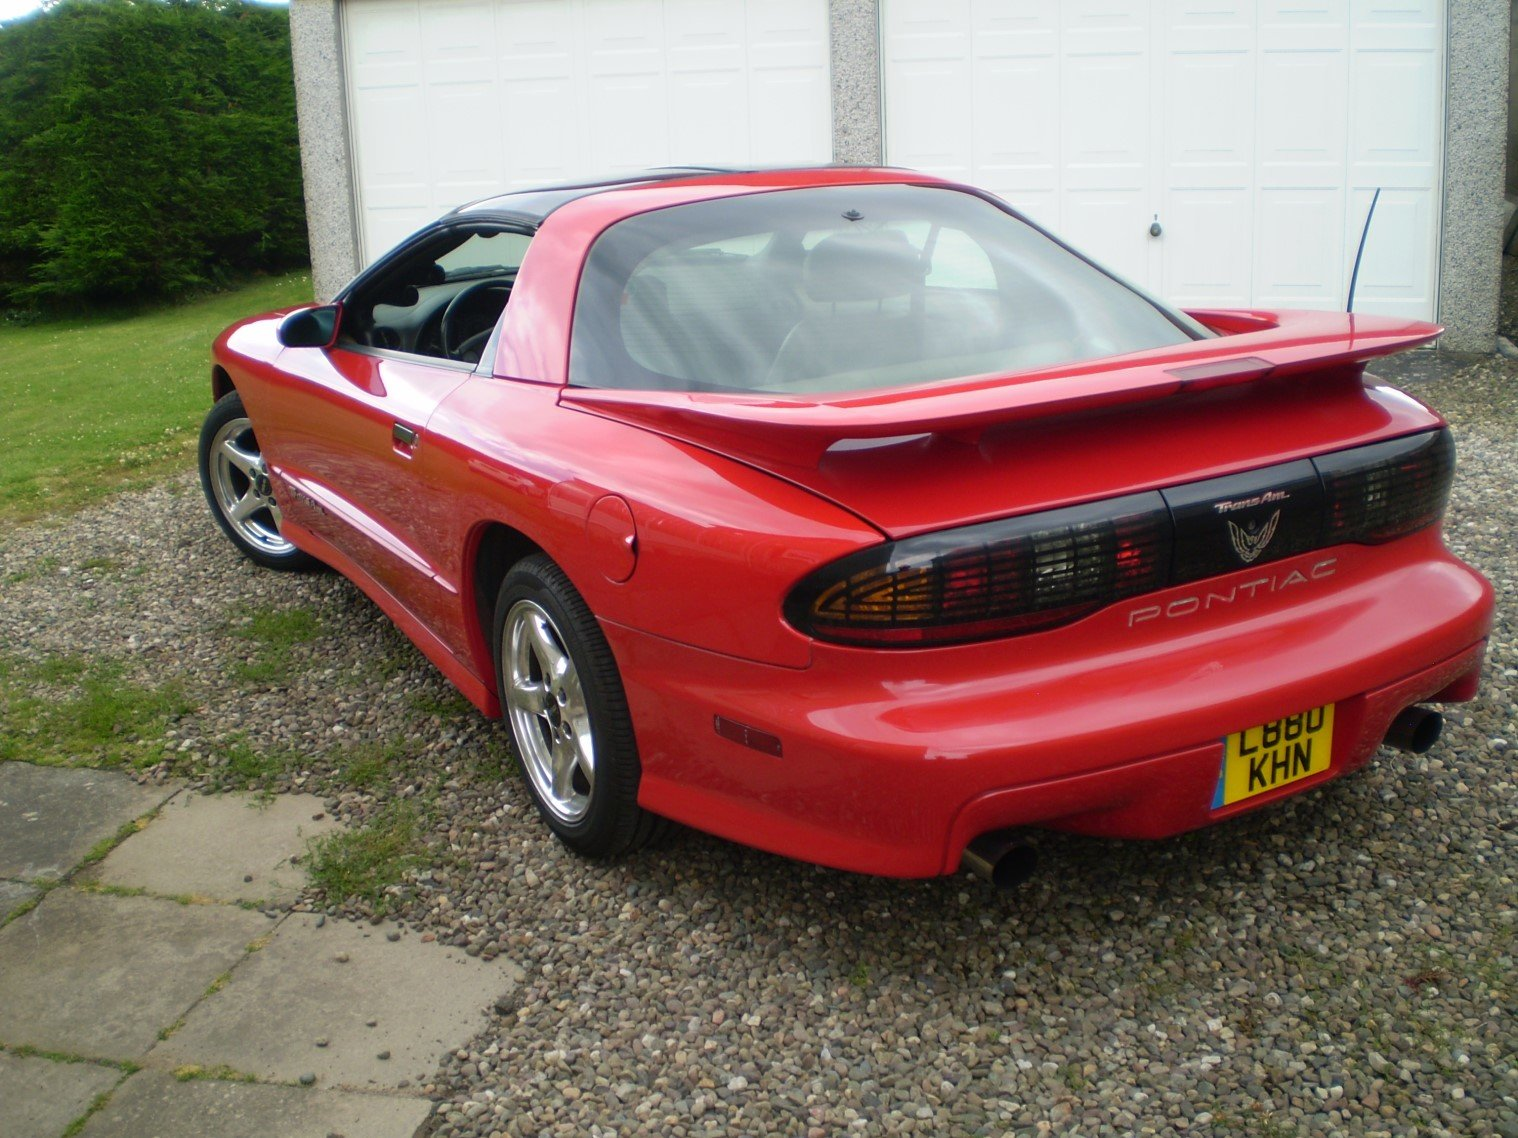 1994 Pontiac Firebird Trans Am For Sale (picture 3 of 6)